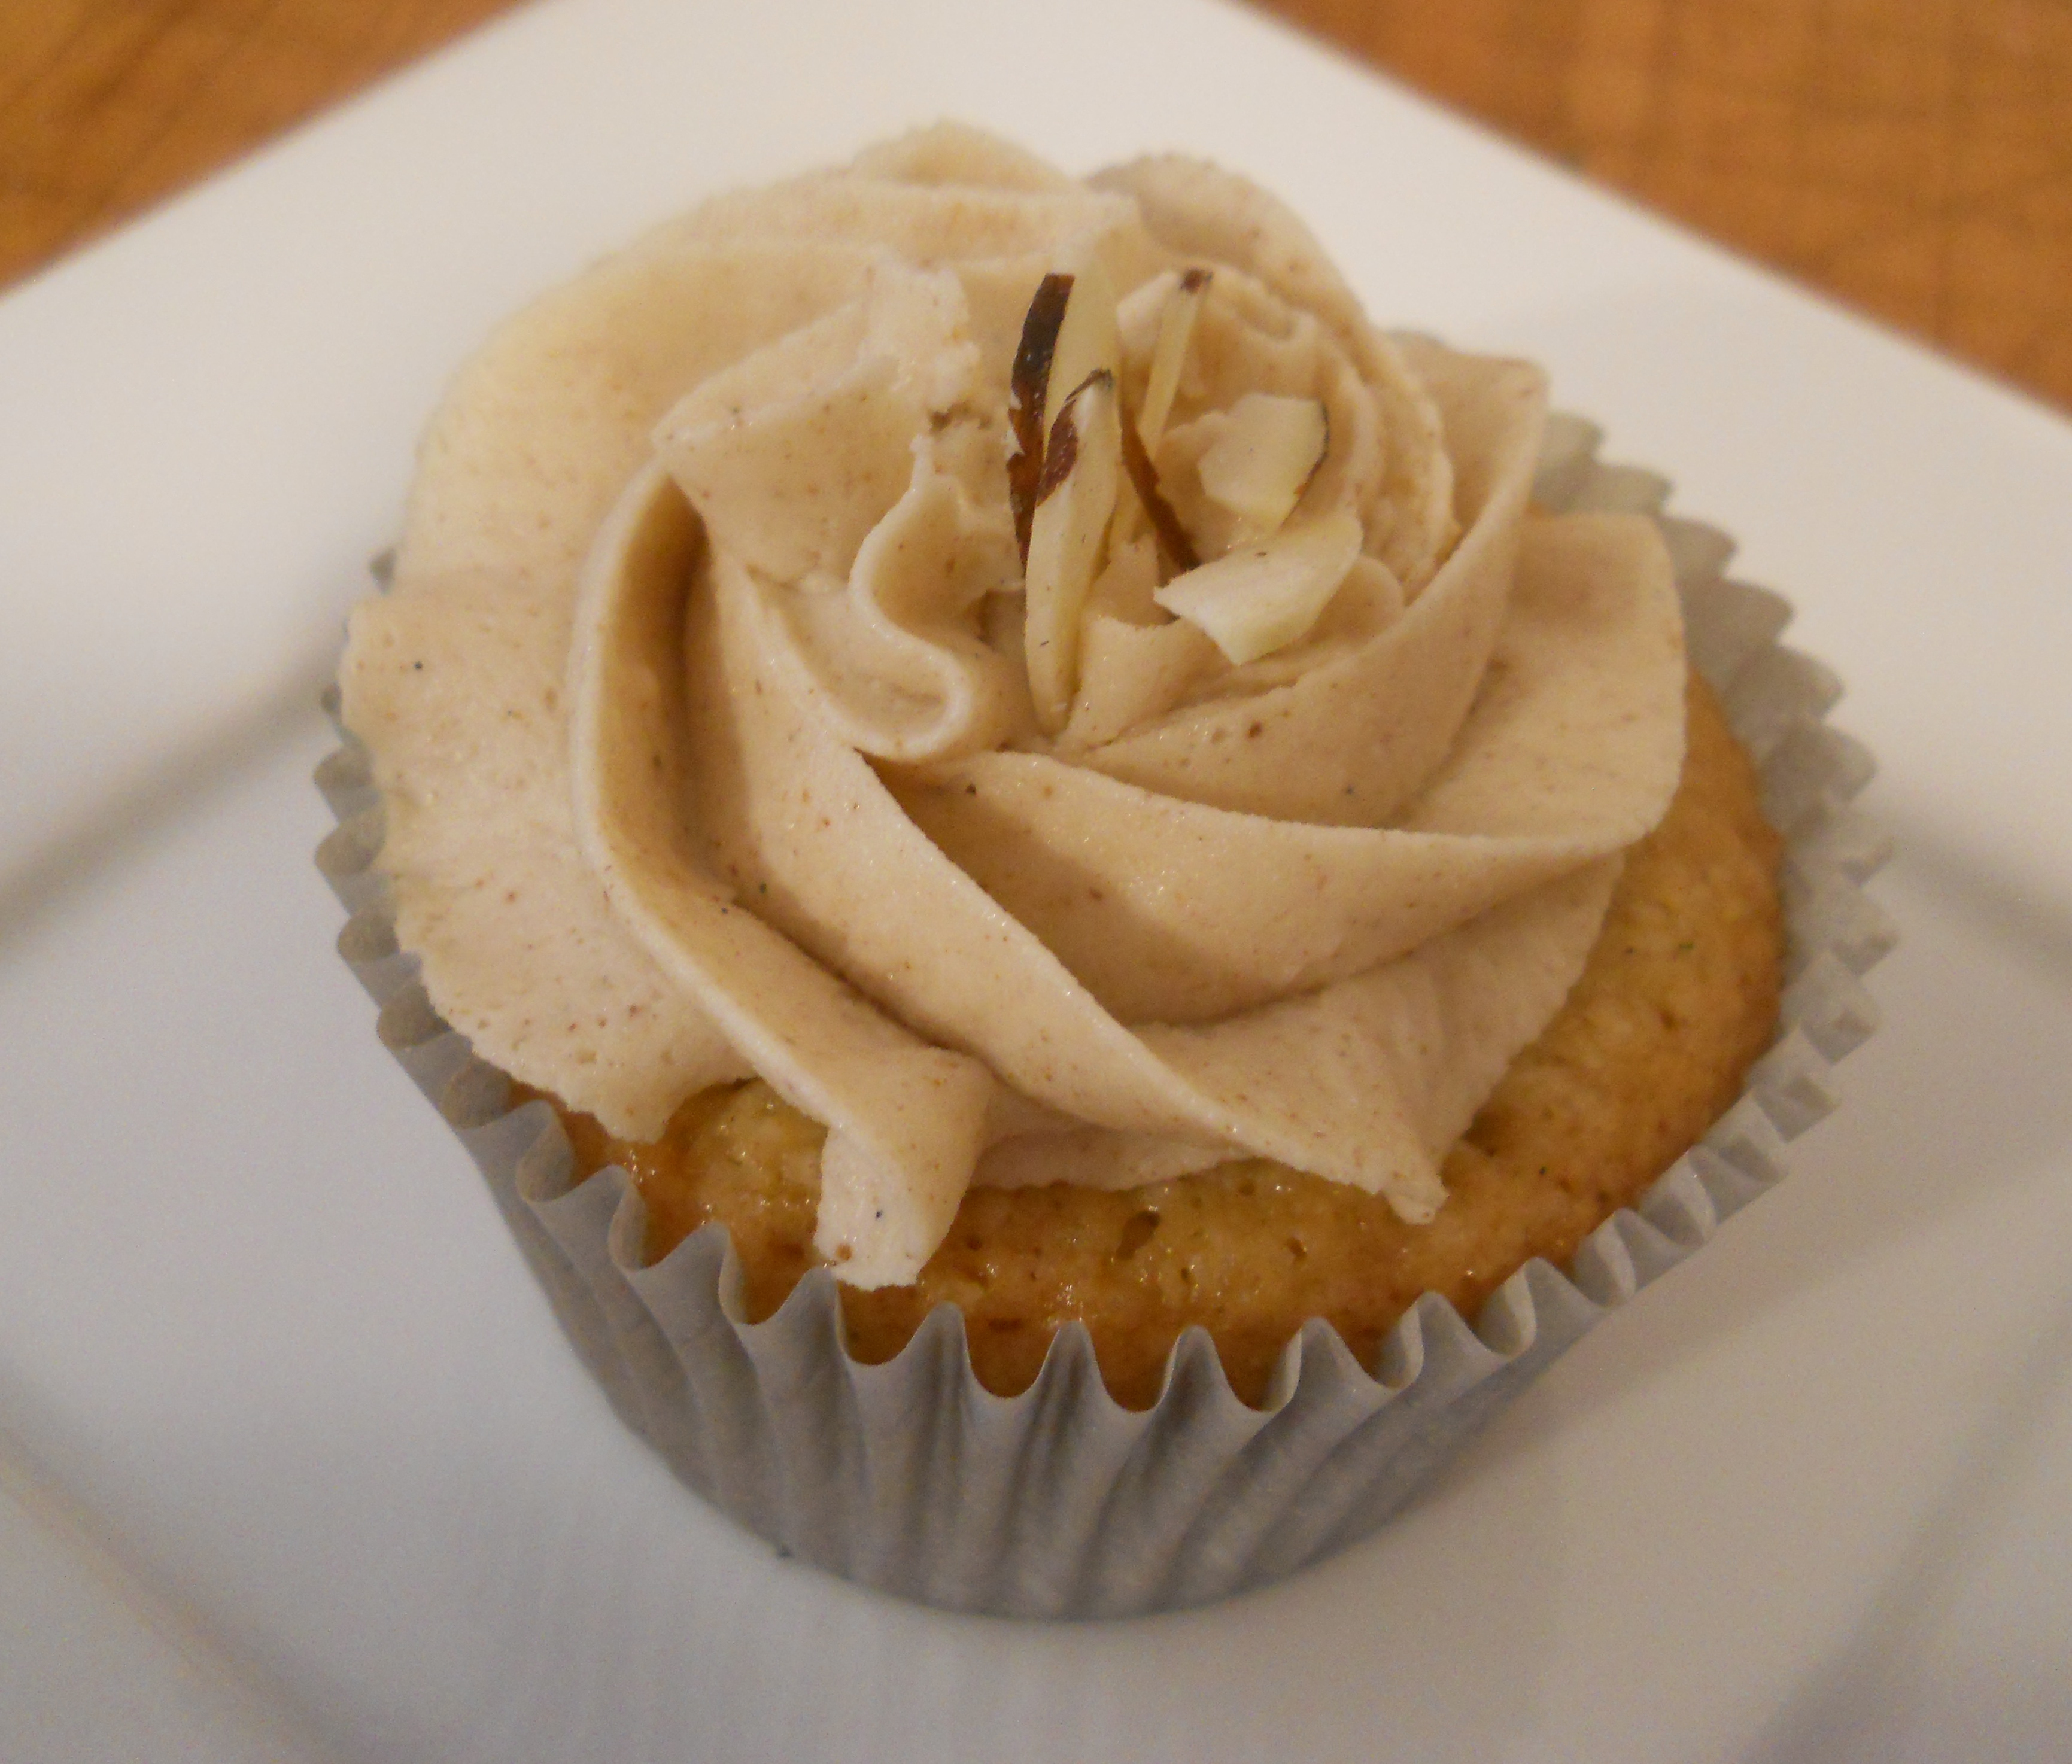 Almond and Brown Butter Cupcakes